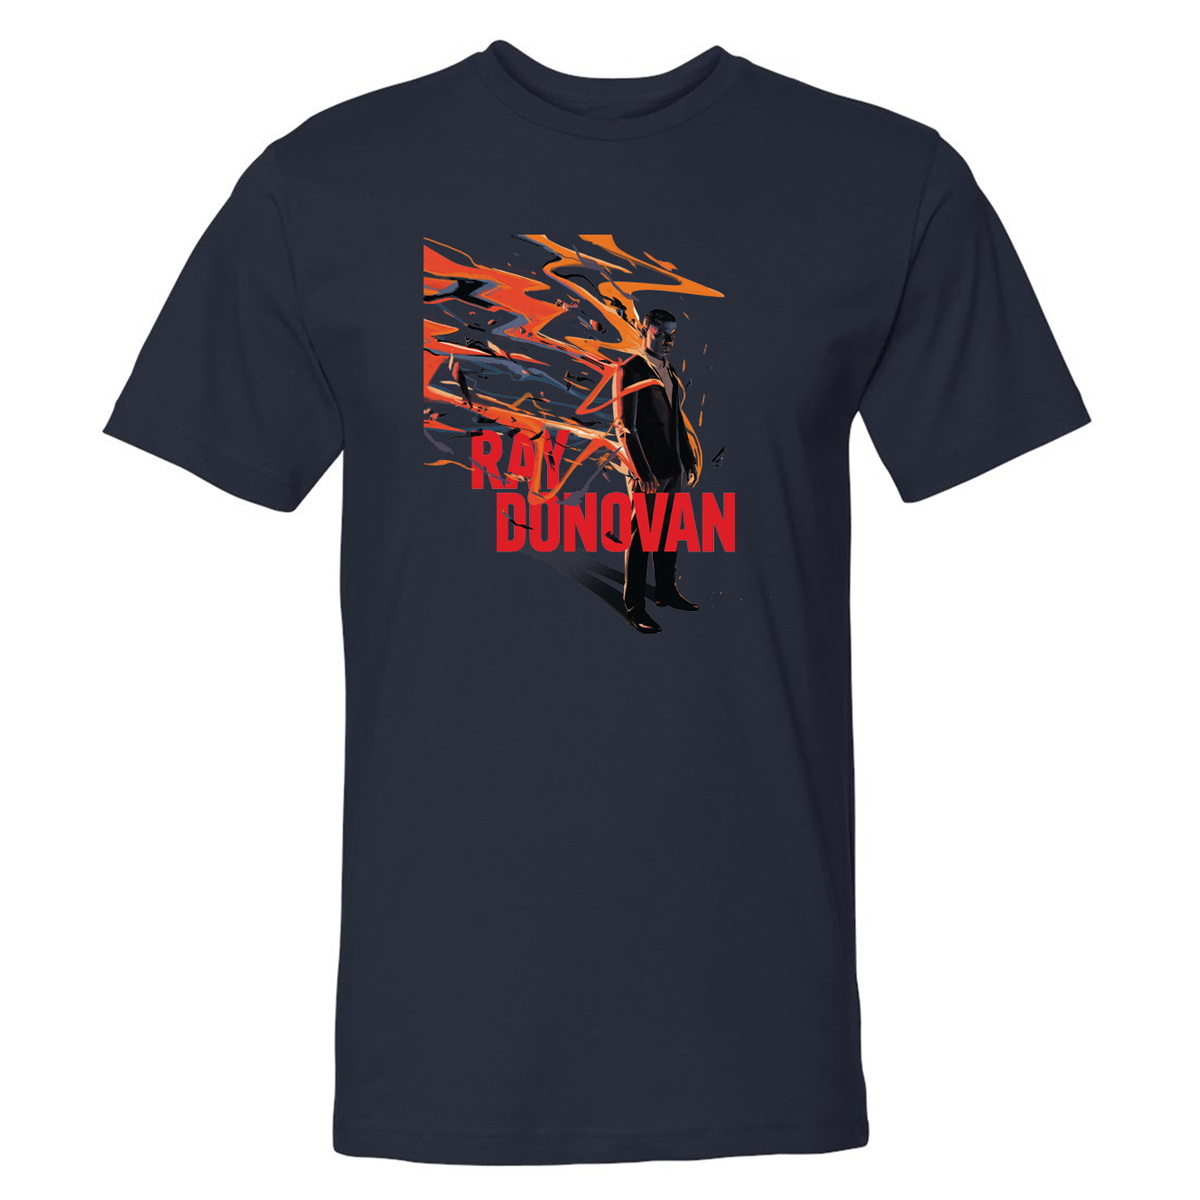 Ray Donovan Mondo Art T-Shirt